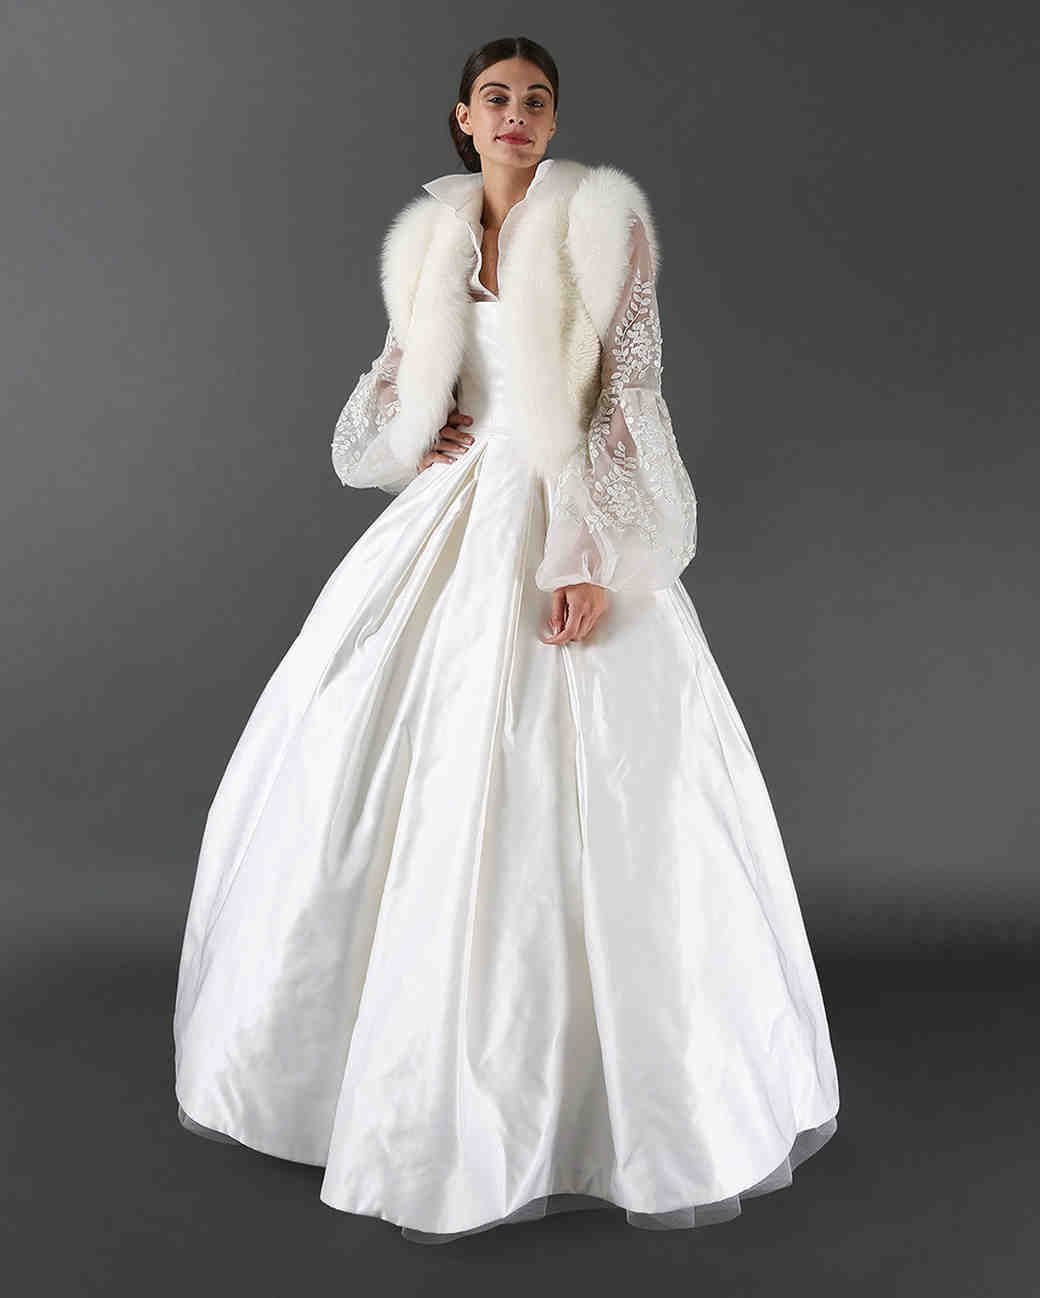 Randi rahm fall wedding dress collection martha stewart